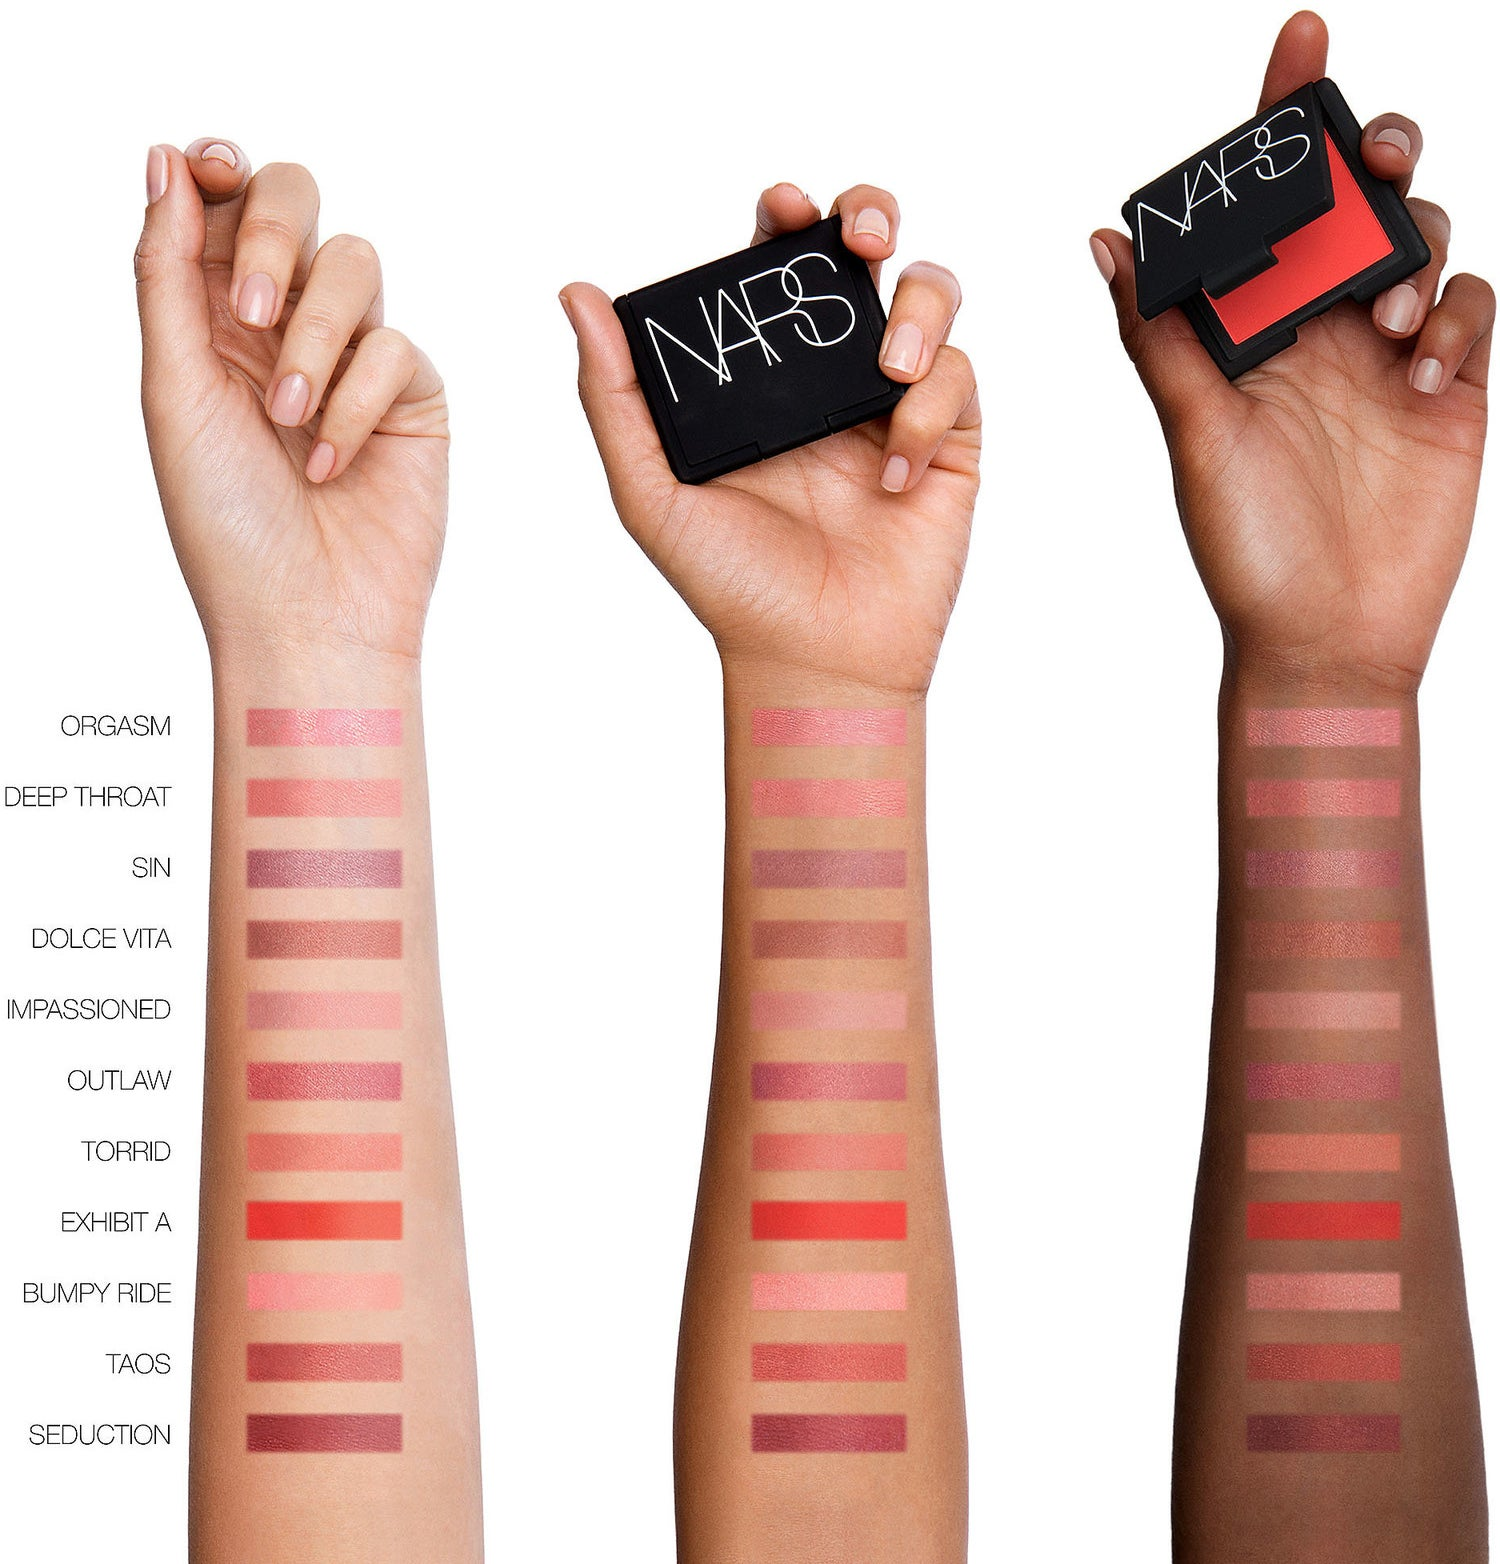 Nars's entire line of blushes shown on three different skin tones.